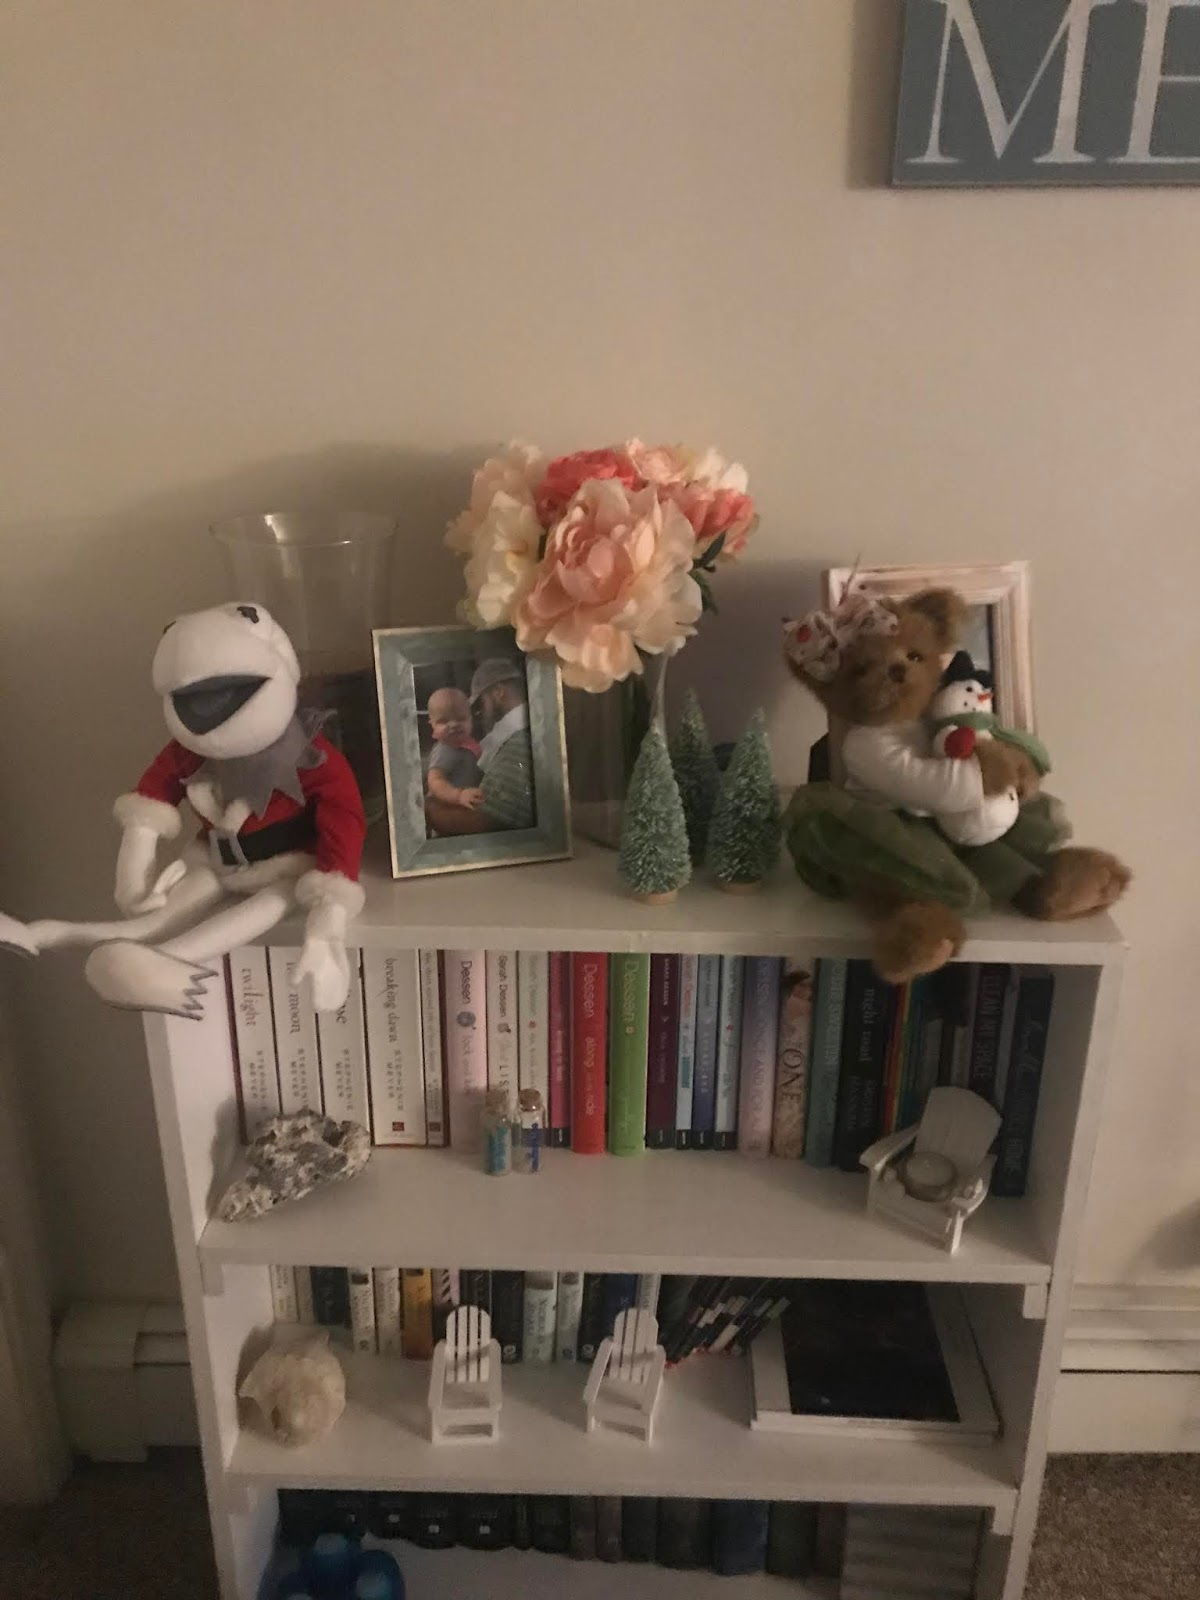 On My Bookshelf I Have Kermit And Teddy Bear Which Are Both Gifts From Years Ago Newest Additions The Little Trees Target Dollar Spot